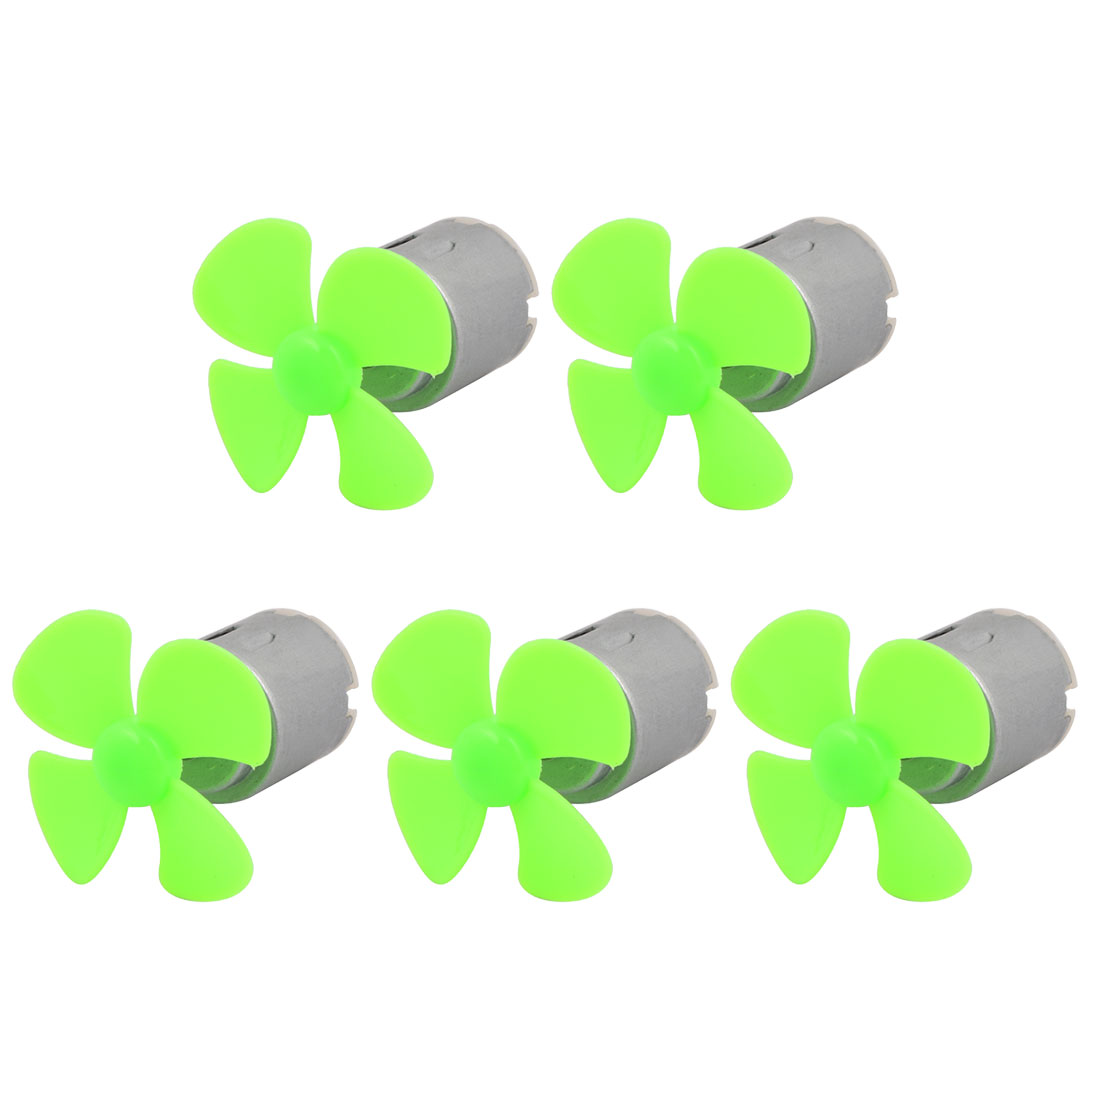 5pcs DC 3V 0.13A 13000RPM Strong Force Motor 4 Blades 40mm Green Propeller for RC Aircraft